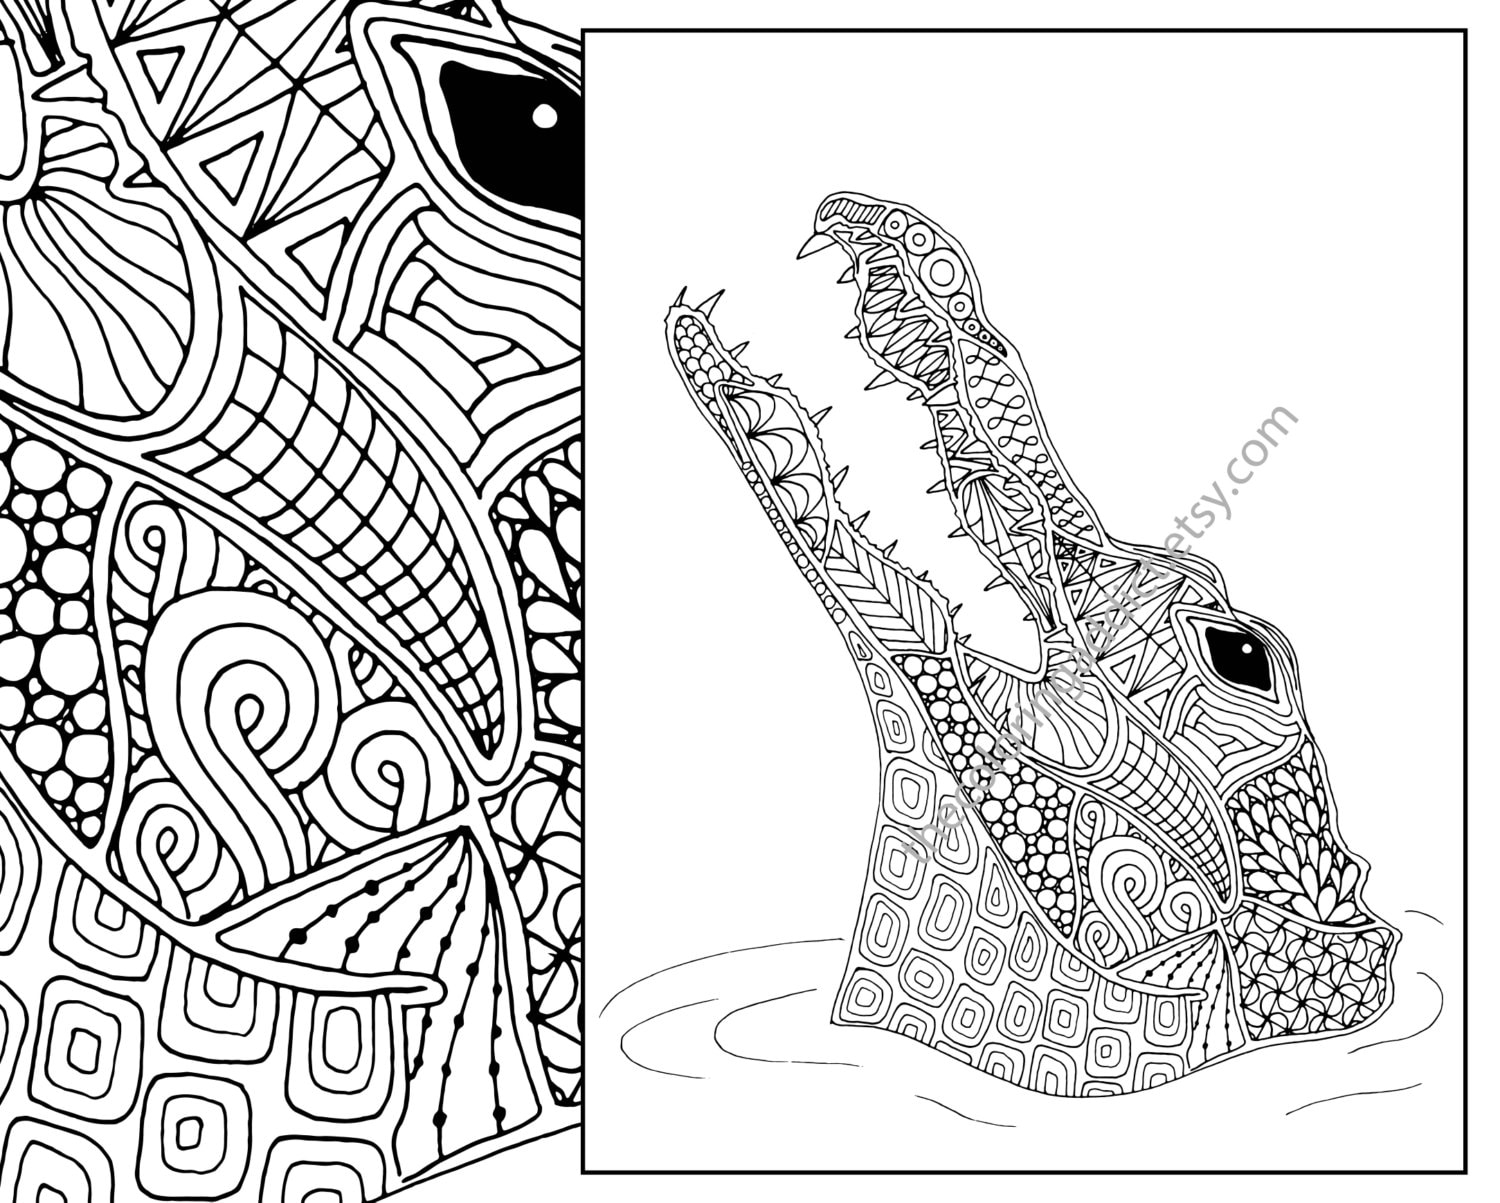 animal coloring page alligator coloring page adult coloring | Etsy